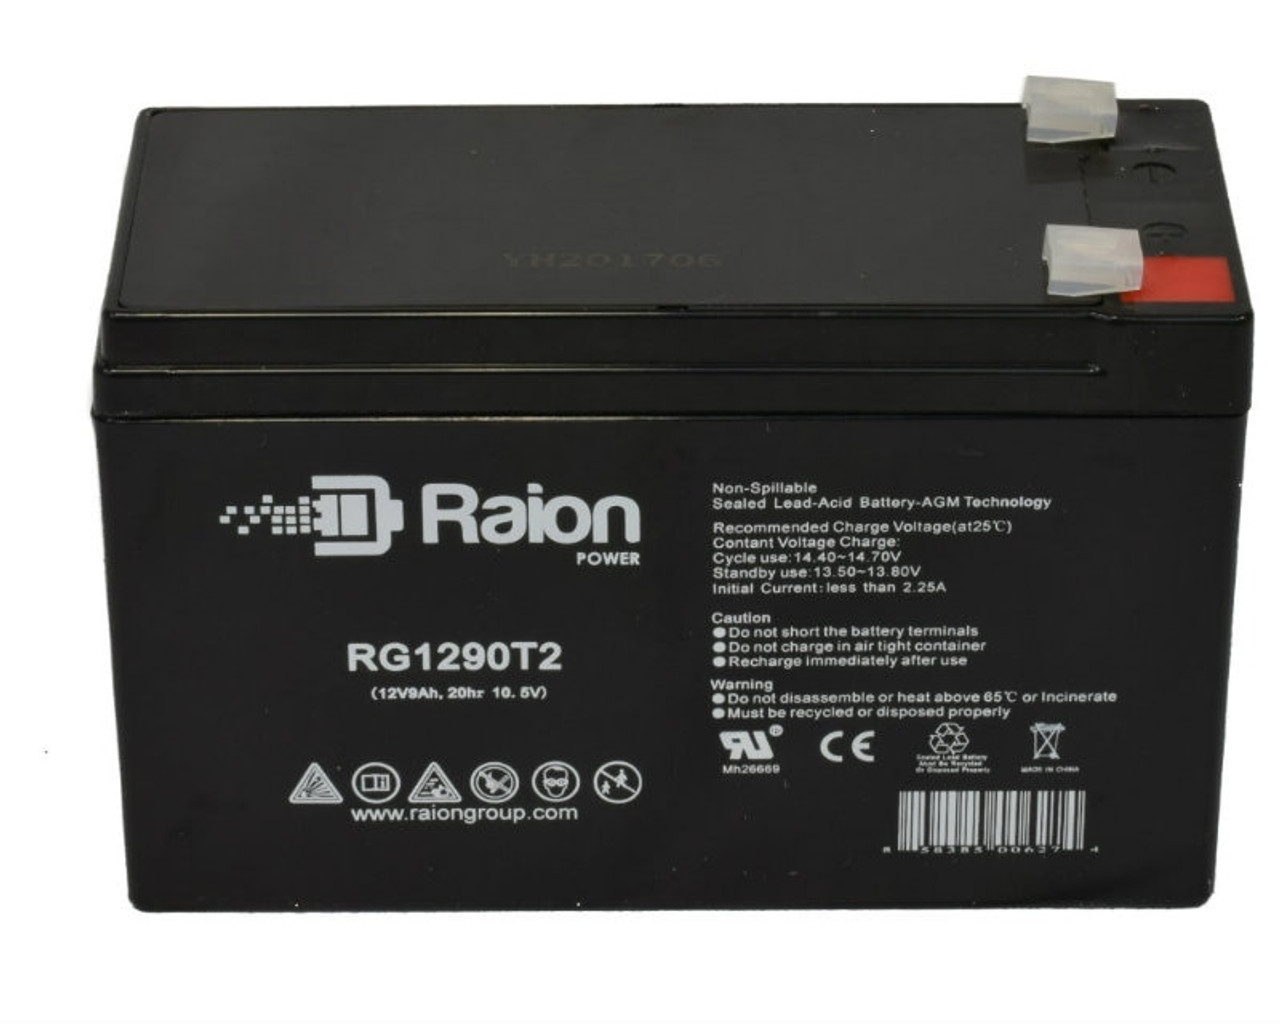 Raion Power 12V 9Ah SLA Battery With T2 Terminals For Potter Electric PFC-5008RG1290T2 Fire Alarm Control Panel